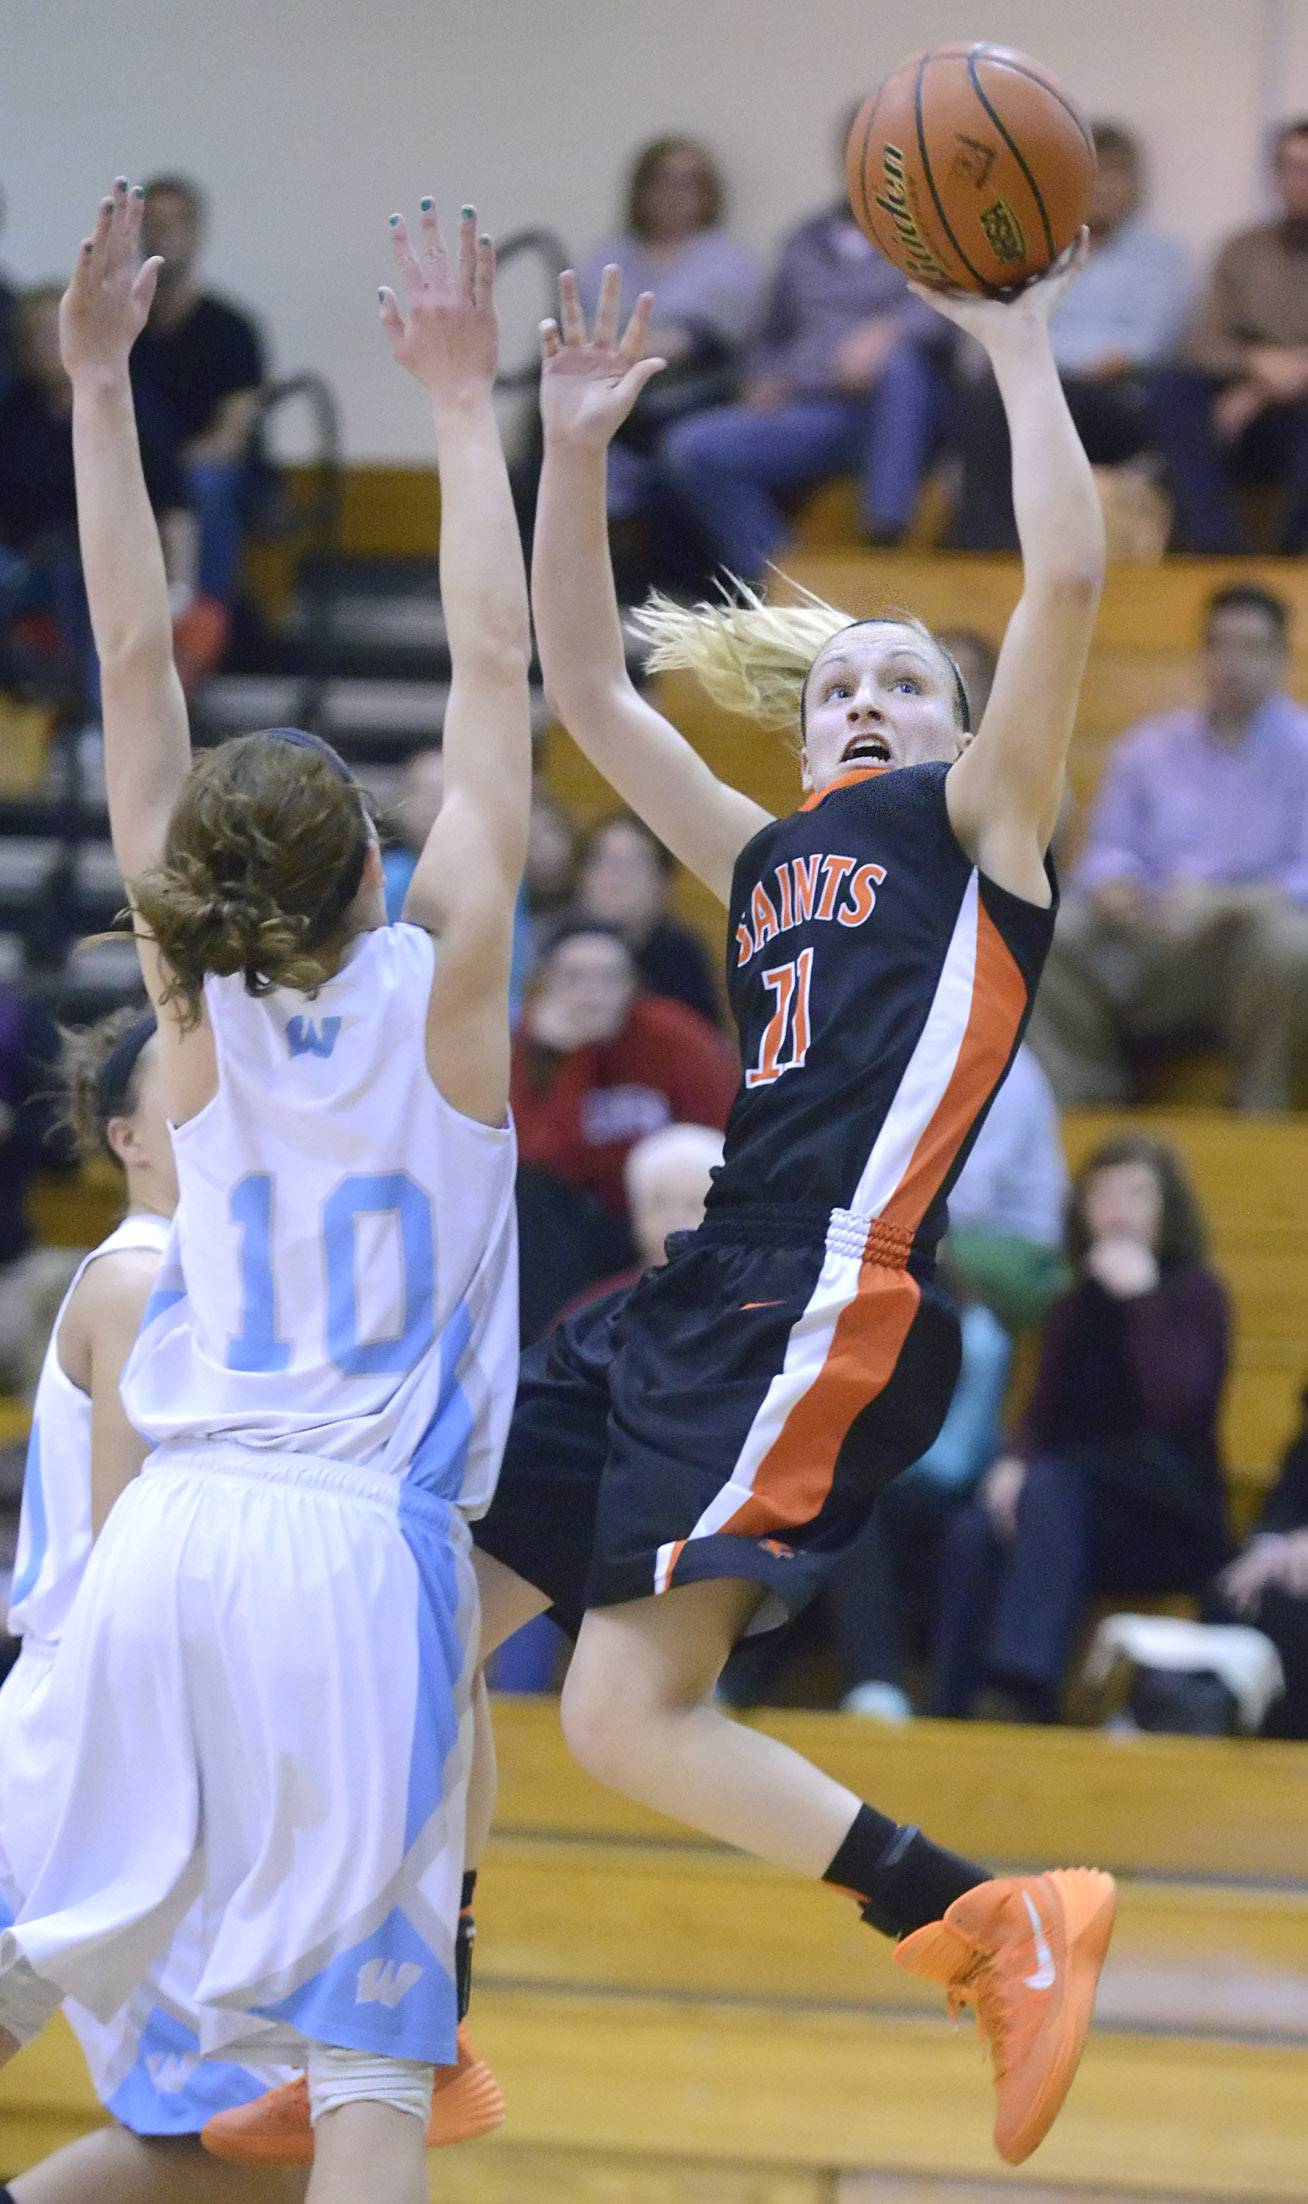 St. Charles East's Katelyn Claussner shoots over a block by Willowbrook's Molly Krawczykowski in the second quarter on Tuesday, February 18.